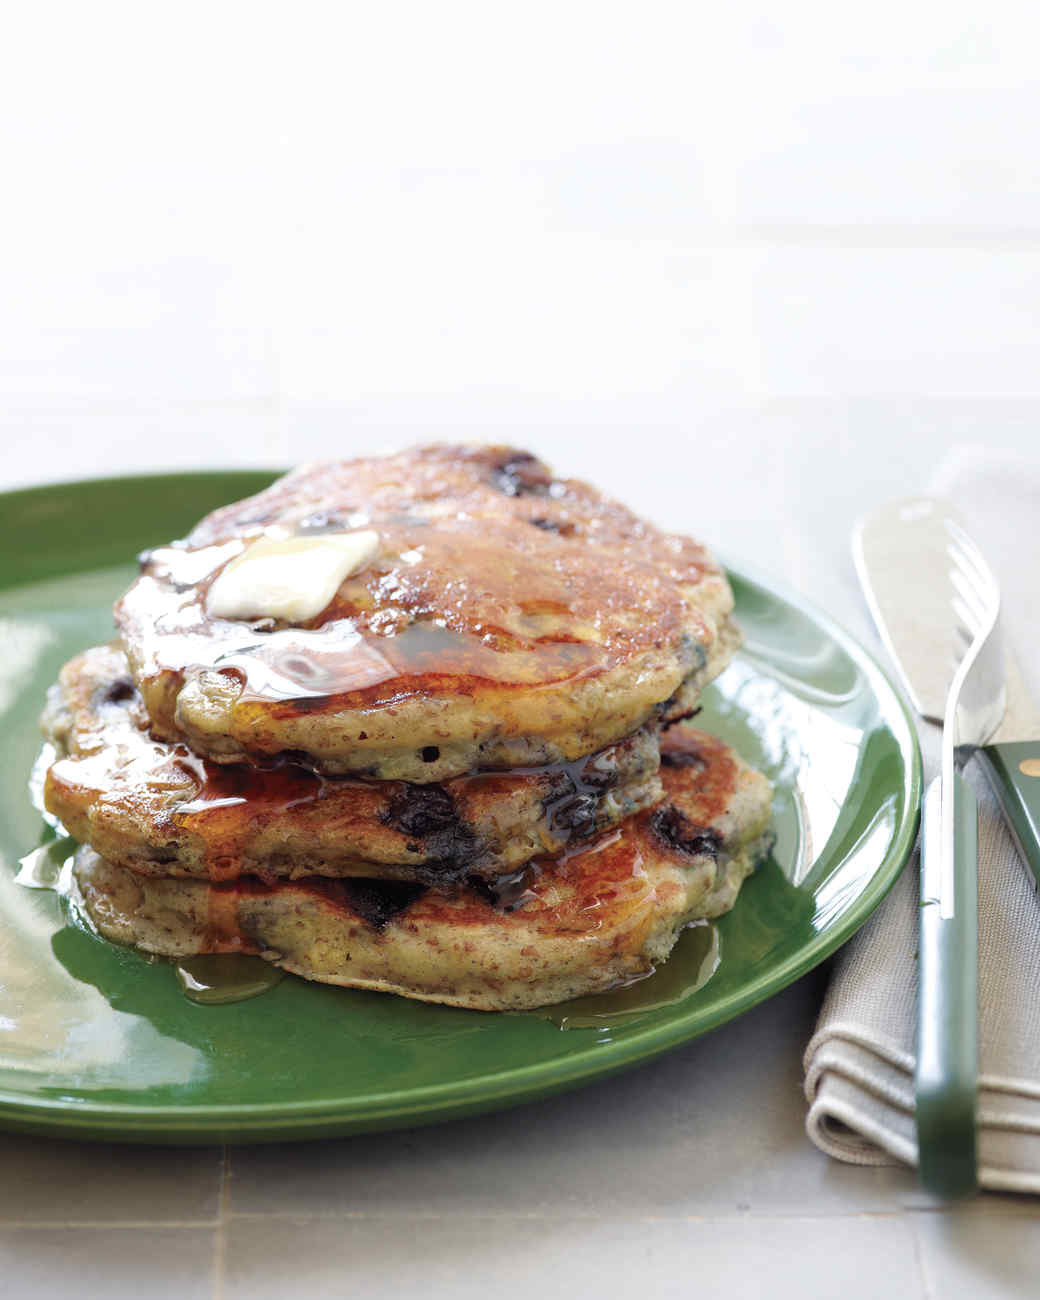 edf-loves-buttermilk-pancakes-001d-med108875.jpg